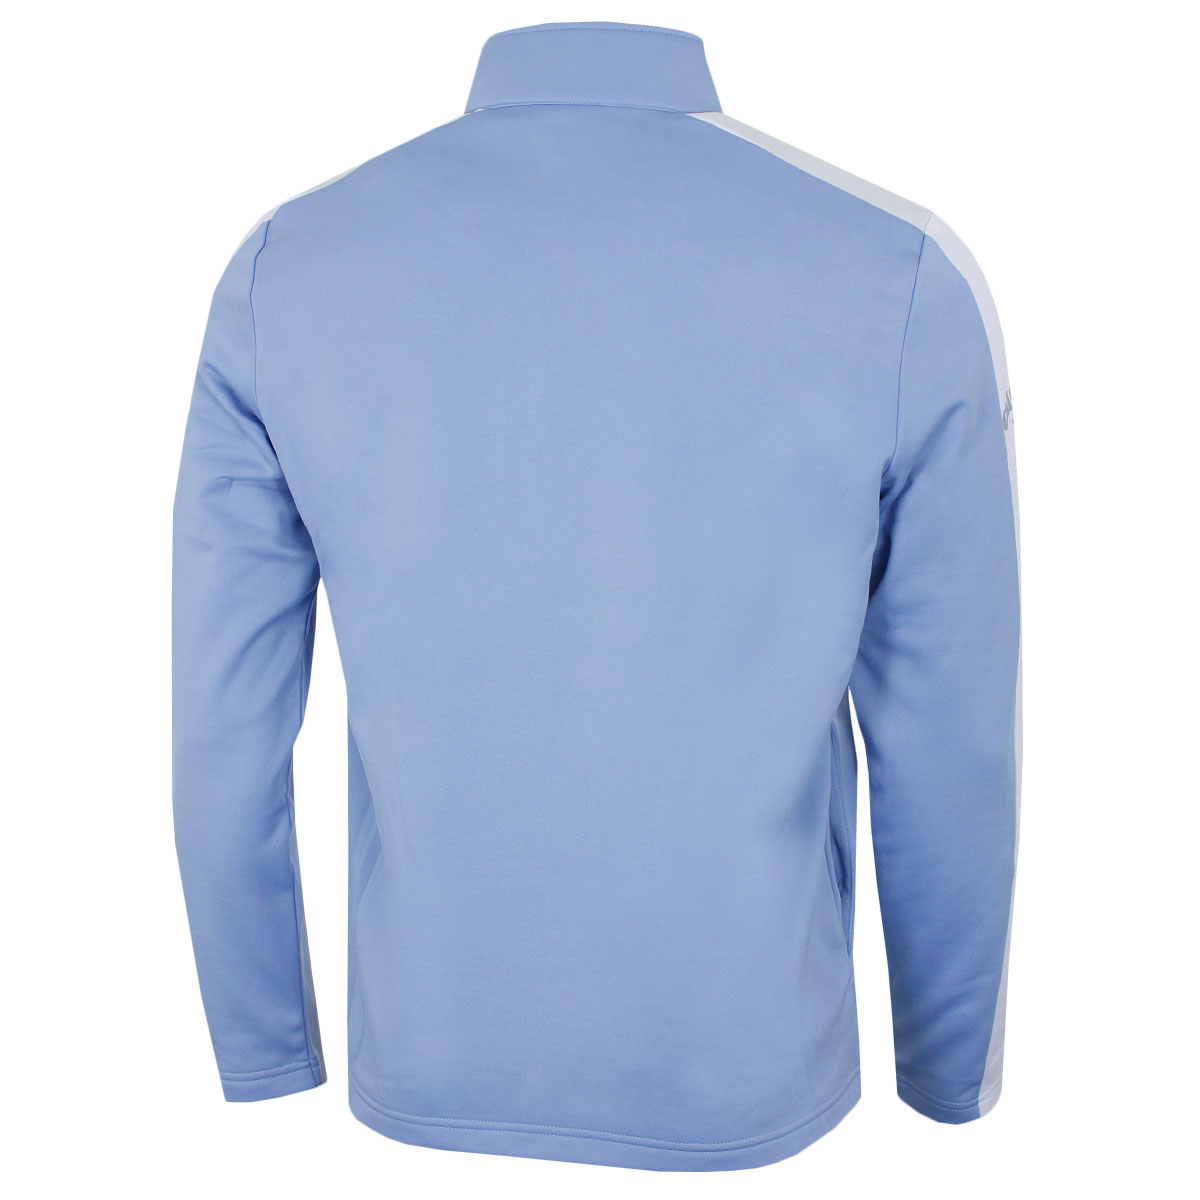 Callaway-Mens-Opti-Therm-Colour-Block-1-4-Zip-Golf-Sweater-50-OFF-RRP thumbnail 3